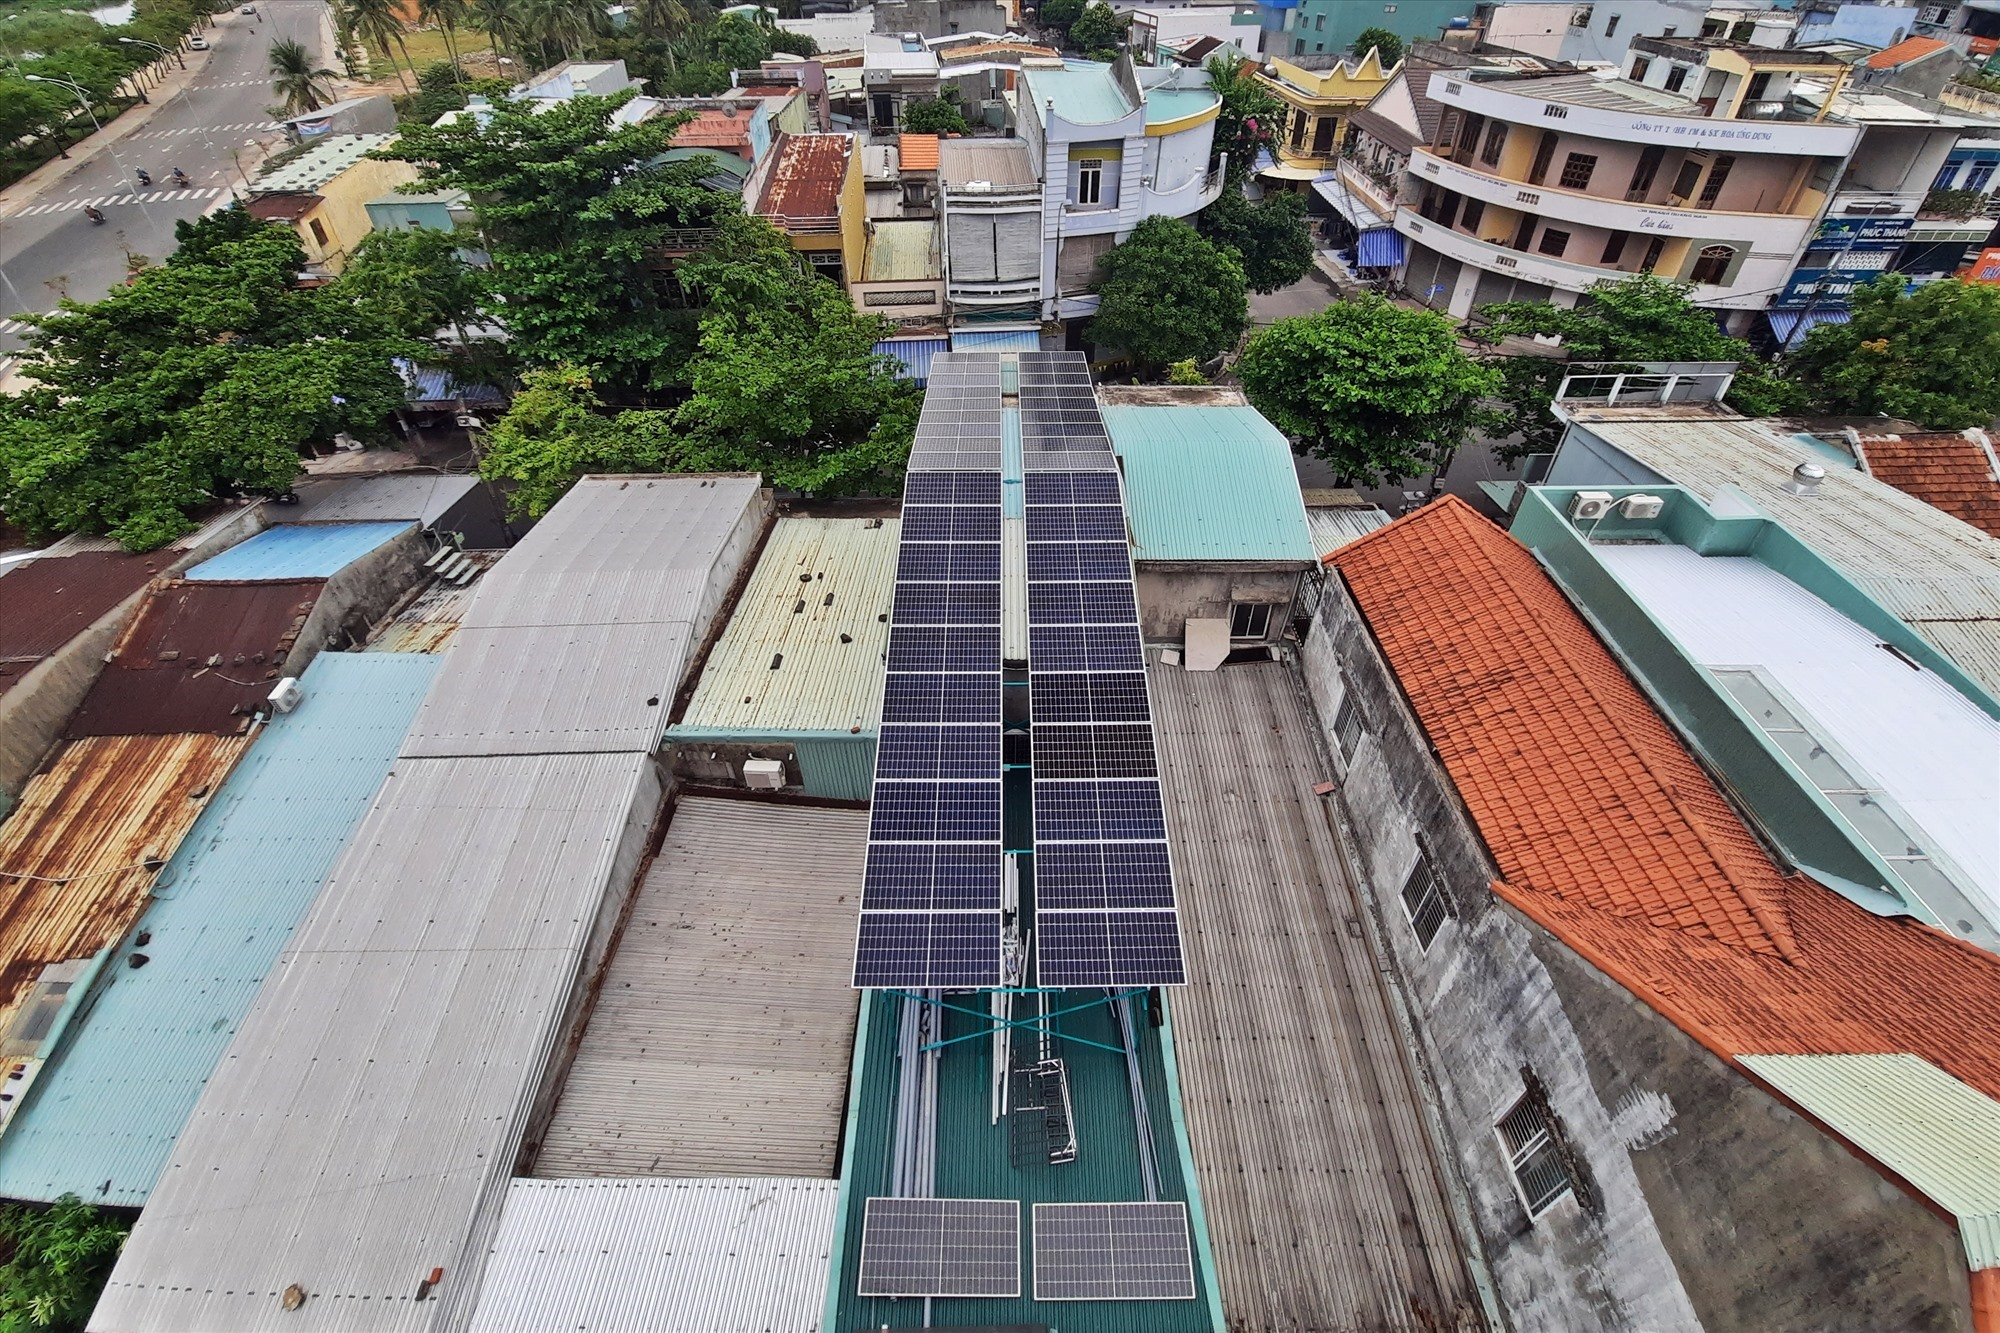 Solar-power system on the swallow house